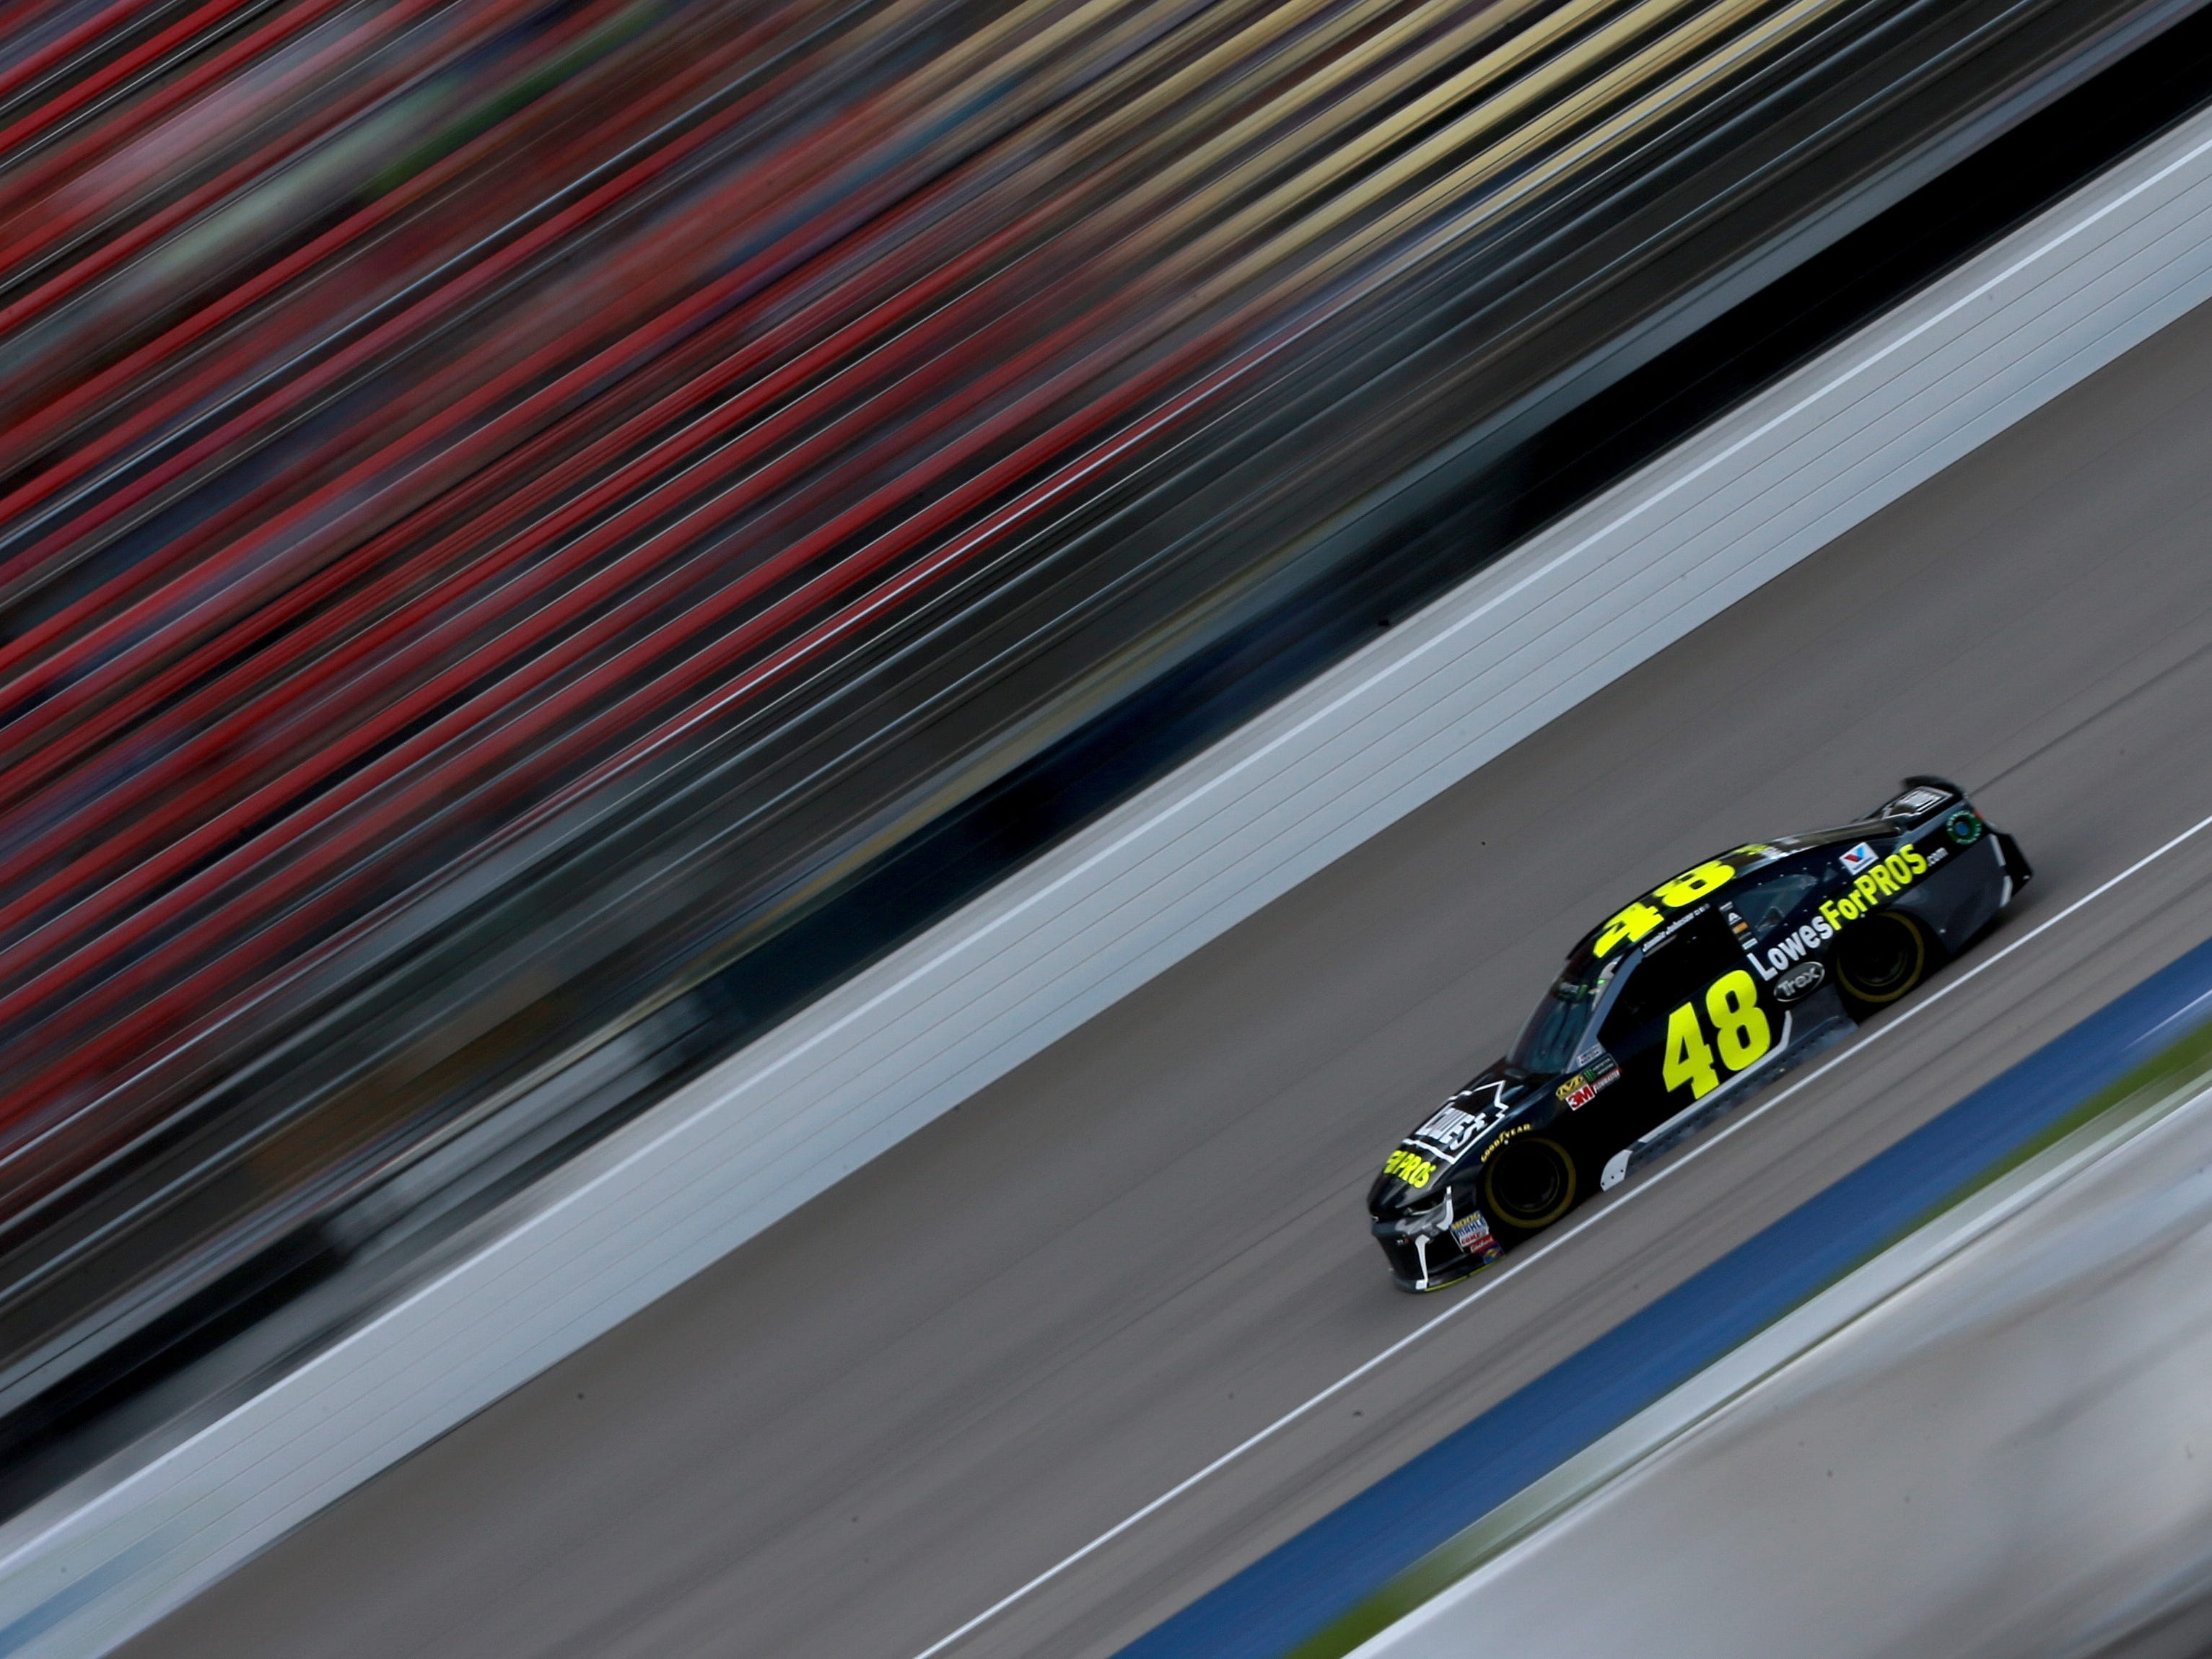 Jimmie Johnson, driver of the #48 Lowe's for Pros Chevrolet, drives during qualifying for the Monster Energy NASCAR Cup Series Consmers Energy 400 at Michigan International Speedway on August 10, 2018 in Brooklyn, Michigan.